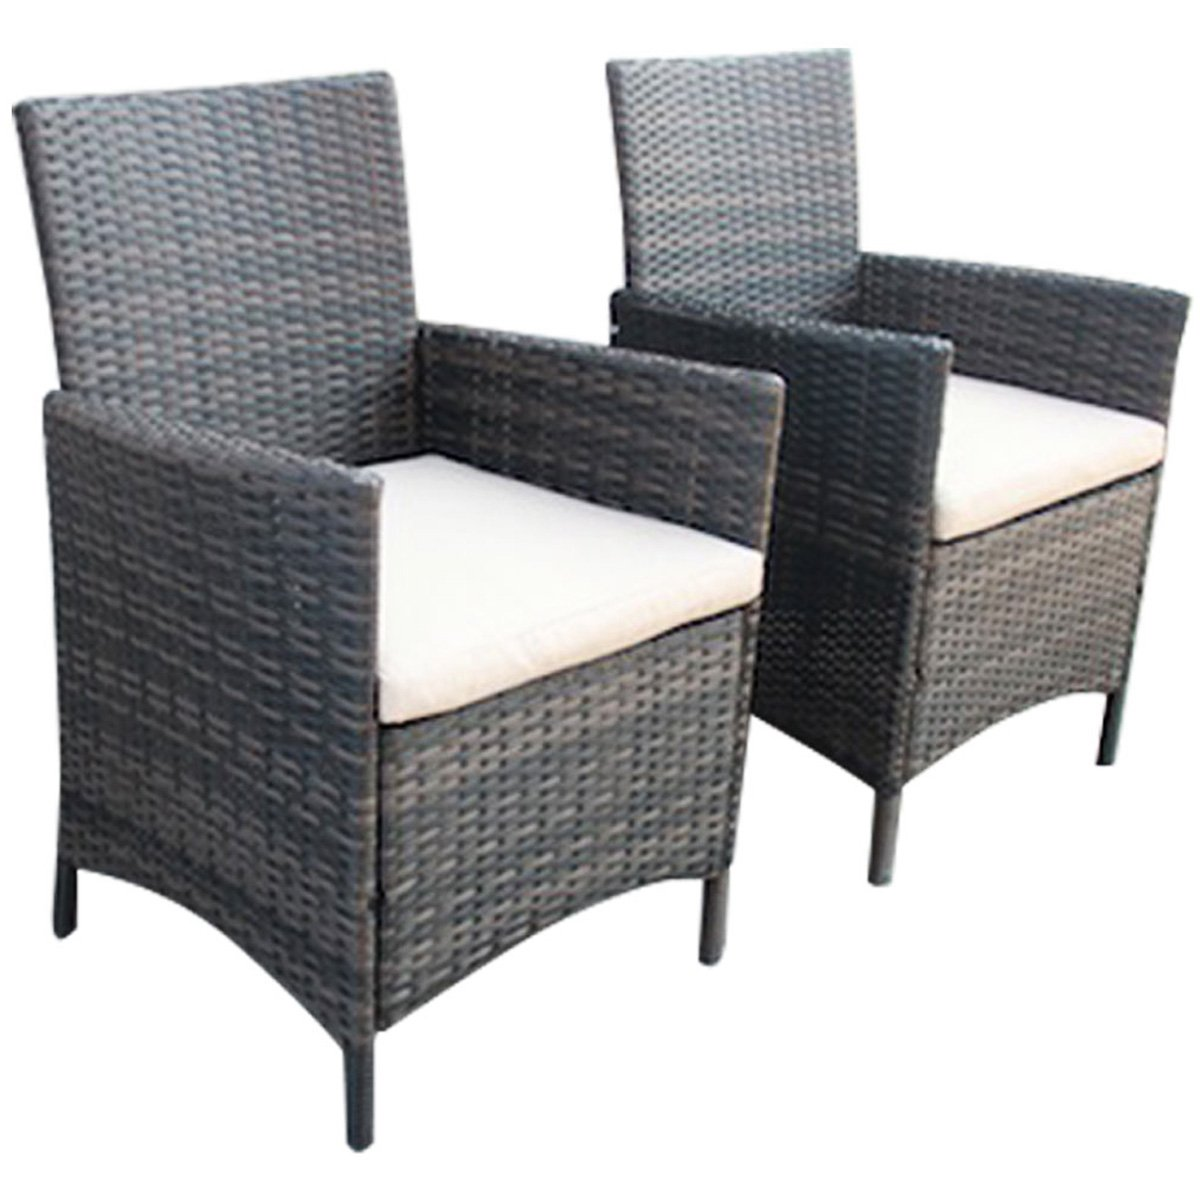 Admirable Pair Of Rattan Dining Armchairs Brown Ncnpc Chair Design For Home Ncnpcorg